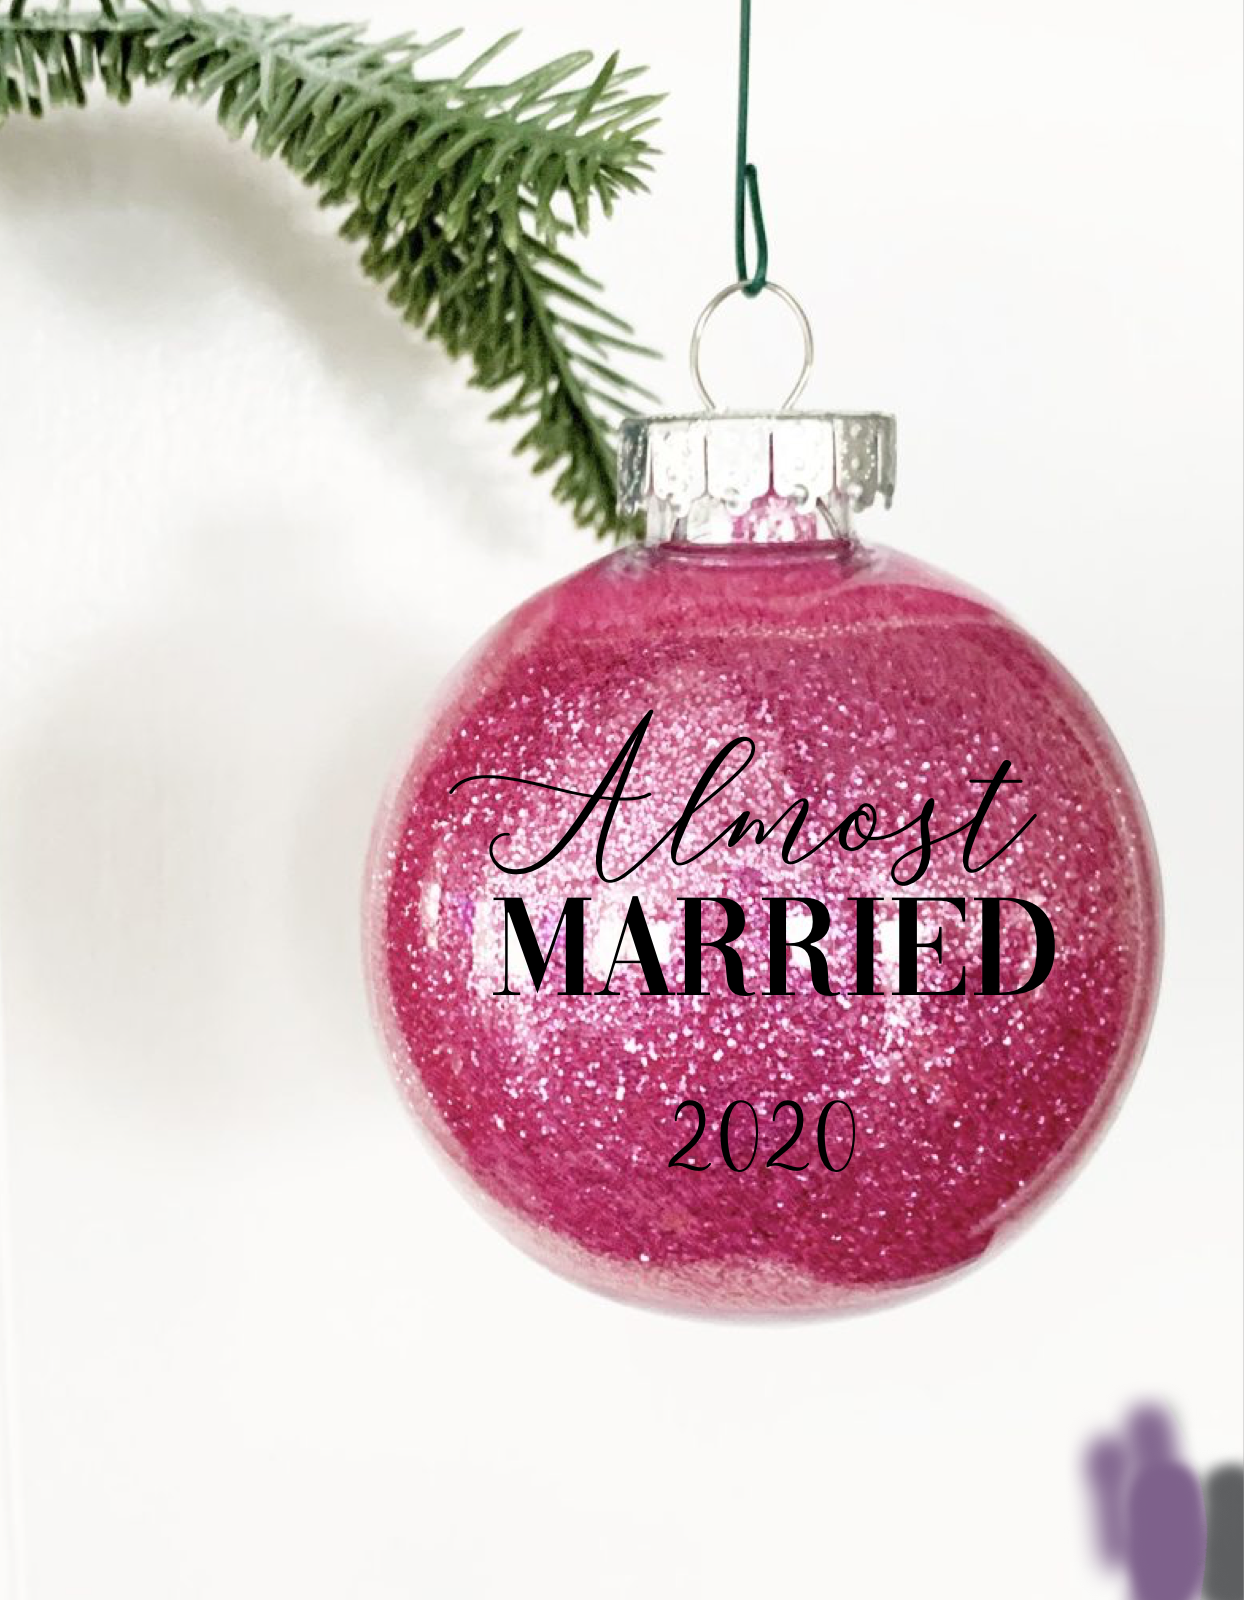 Almost Married 2020 Glitter Ornament